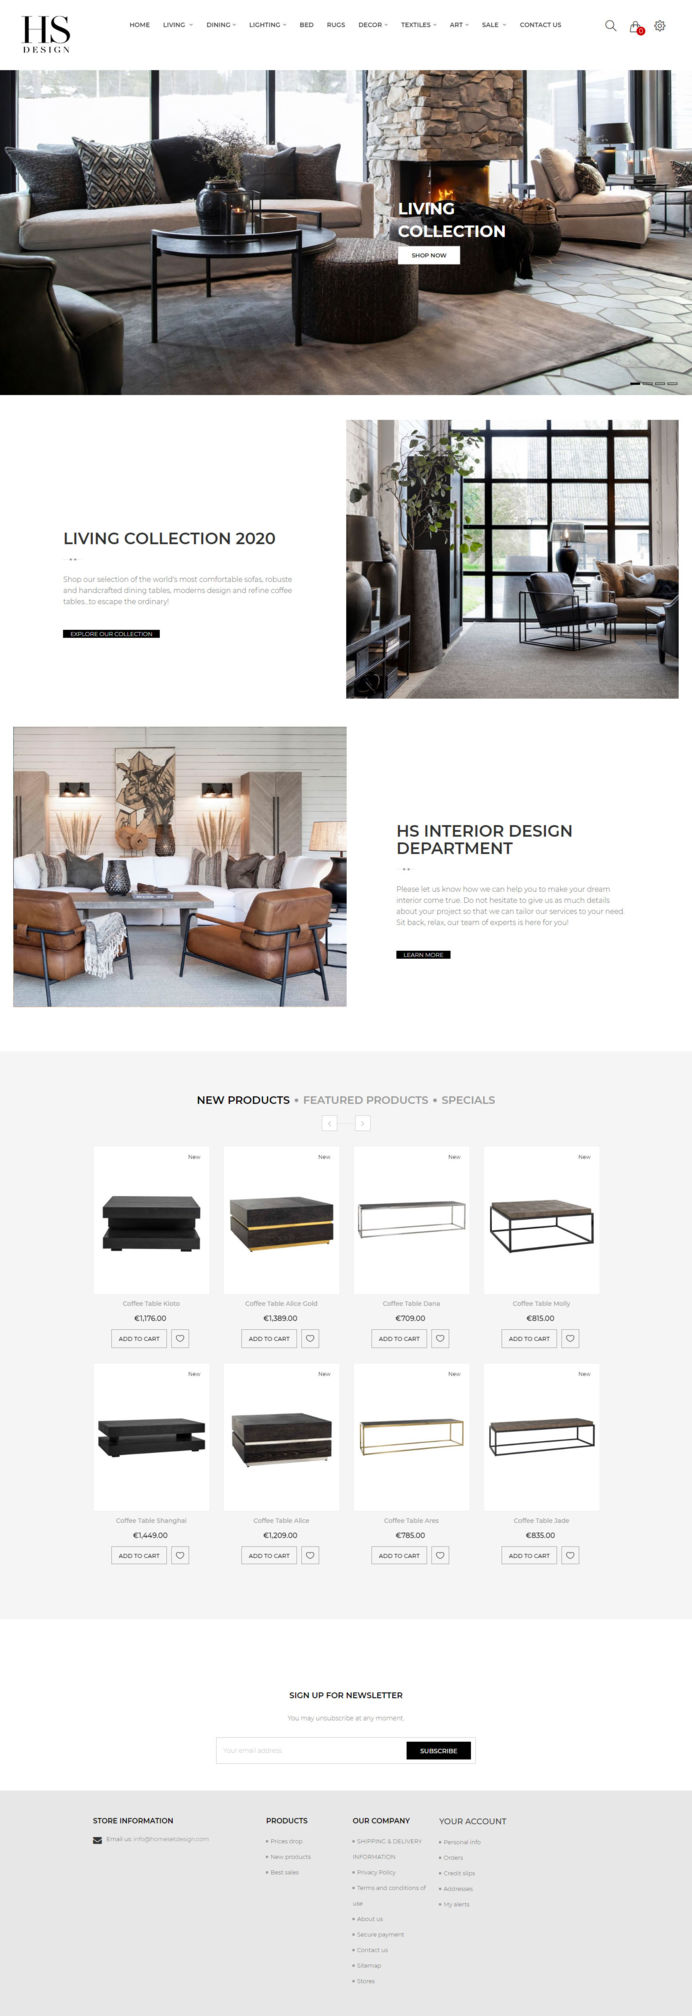 Luxury furniture online shop in Marbella developed on Prestashop 1.7 e-commerce manager and a modified premium theme